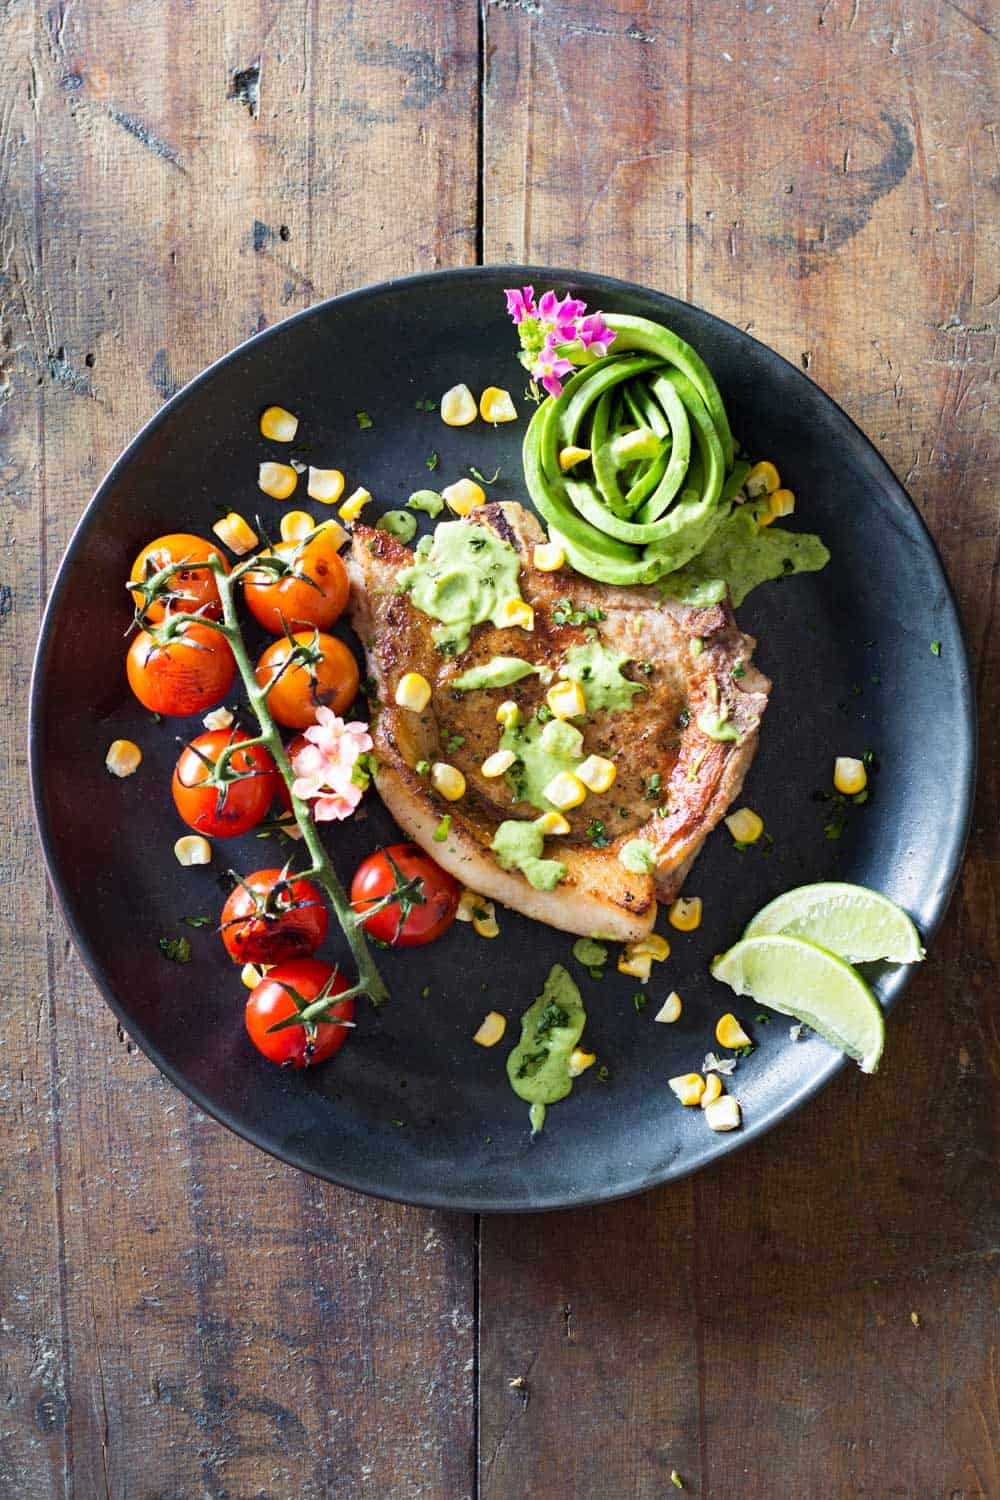 Mexican Pork Chops garnished with avocado cilantro sauce, corn kernels, cherry tomatoes and sliced lemon on a black plate.